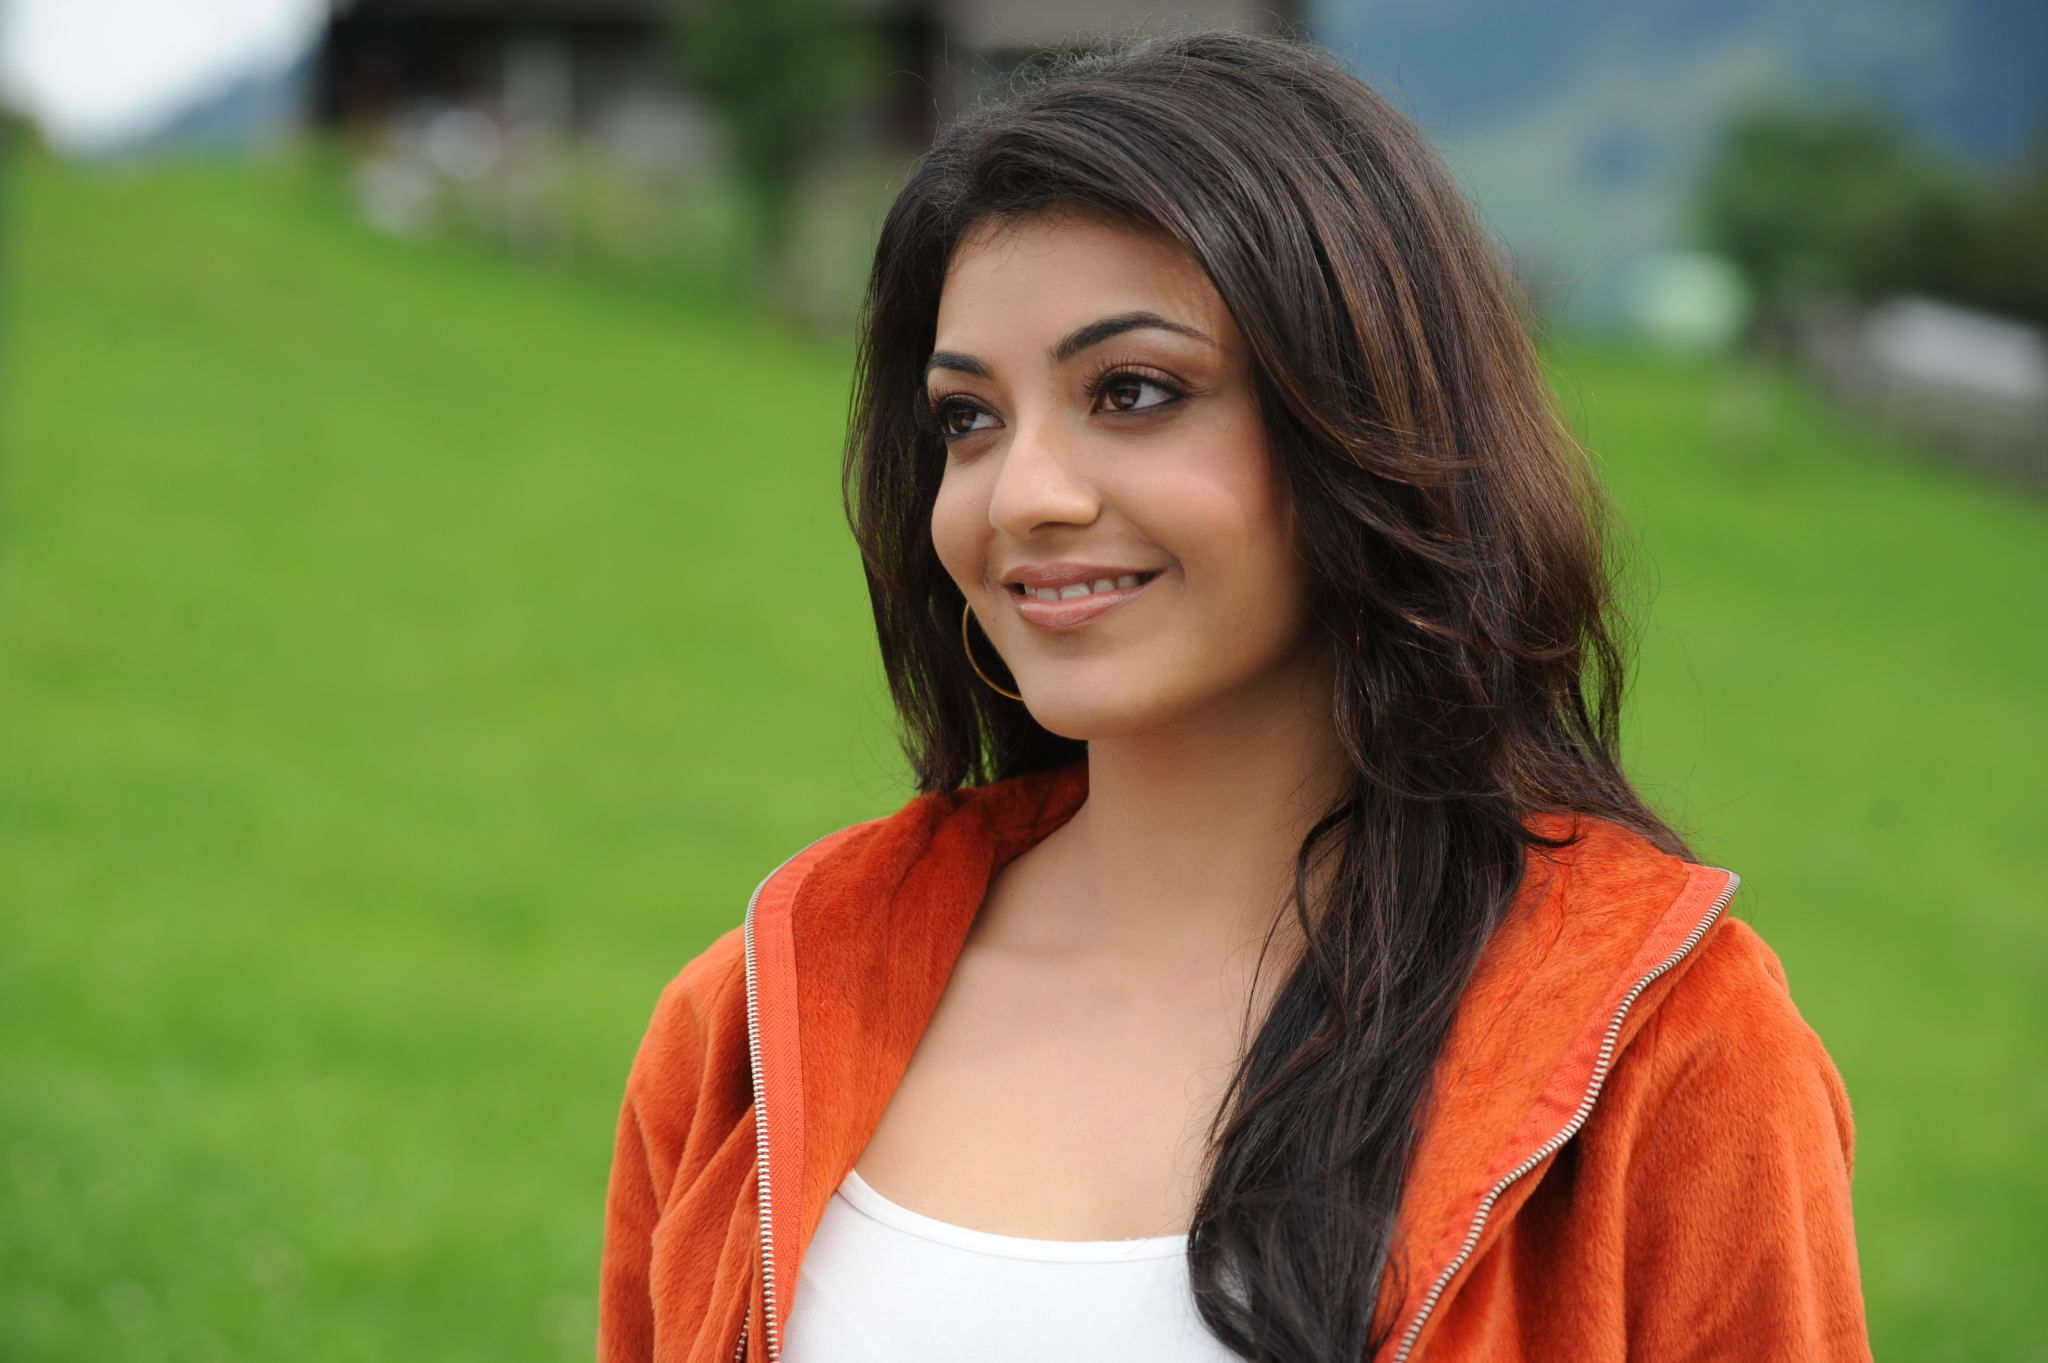 Wallpaper download kajal agarwal - Kajal Agarwal 4k